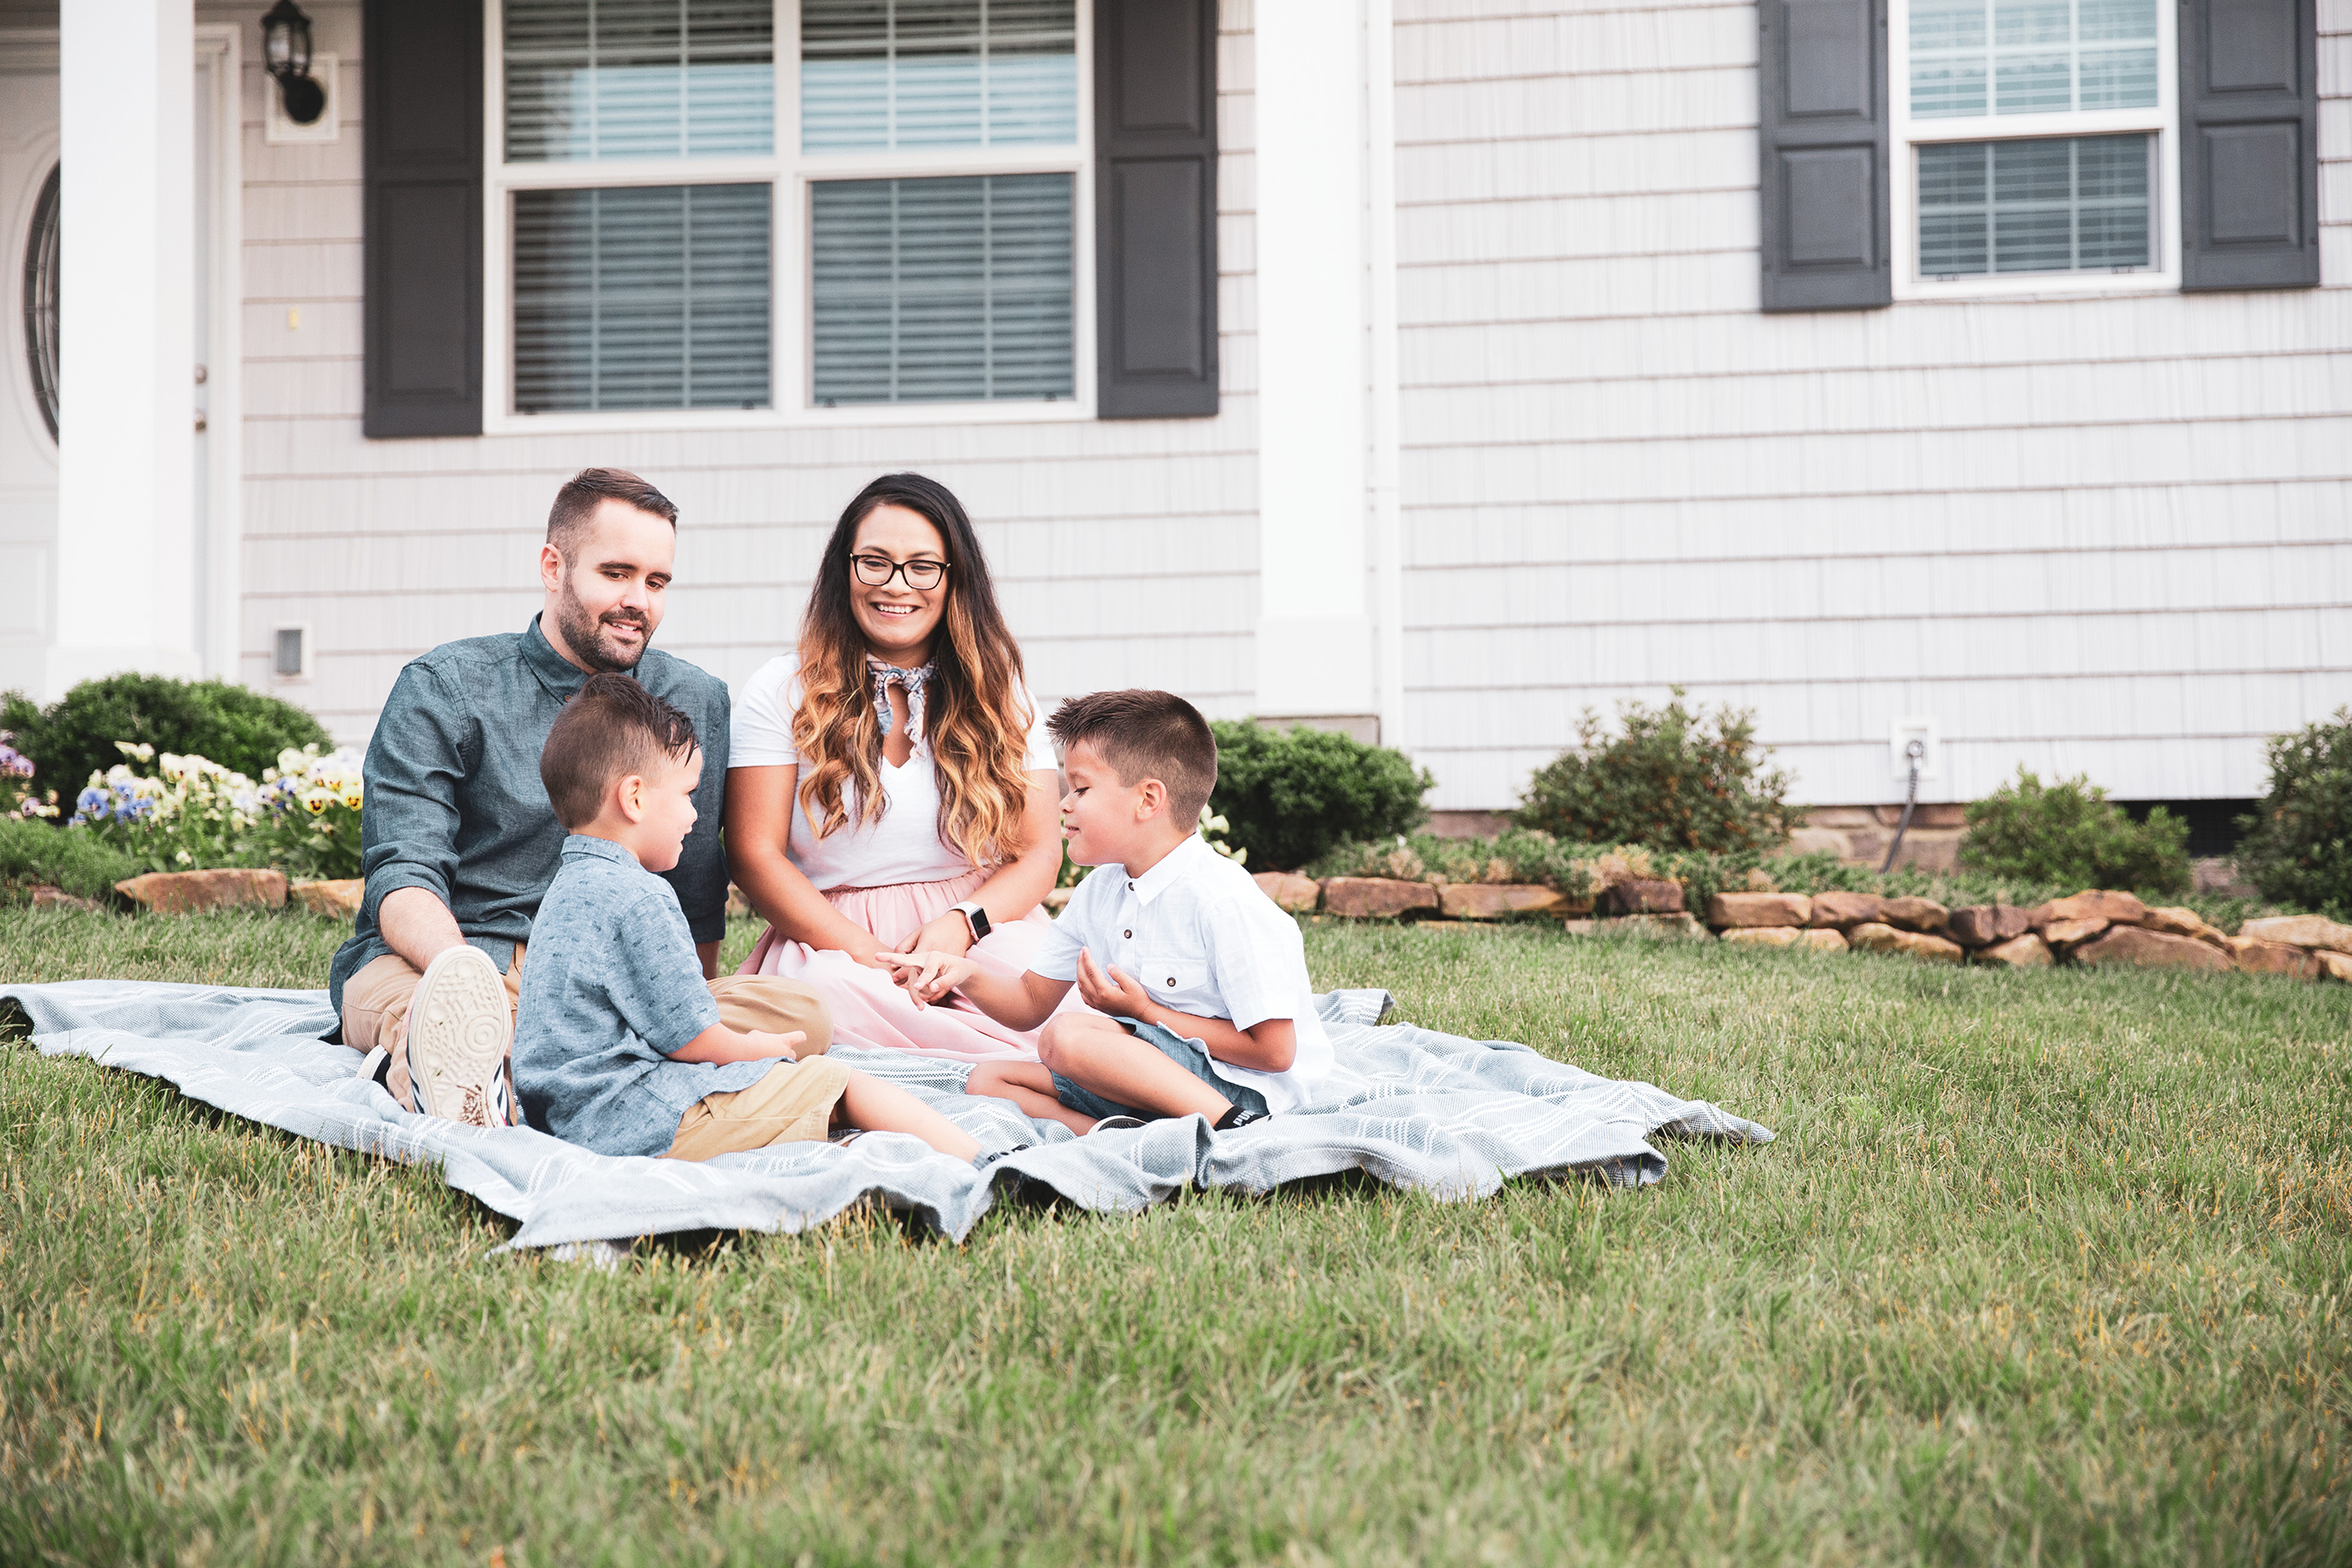 Homes built off-site are an attainable solution for first-time home buyers forming new households and families looking to downsize as they invest in their futures.